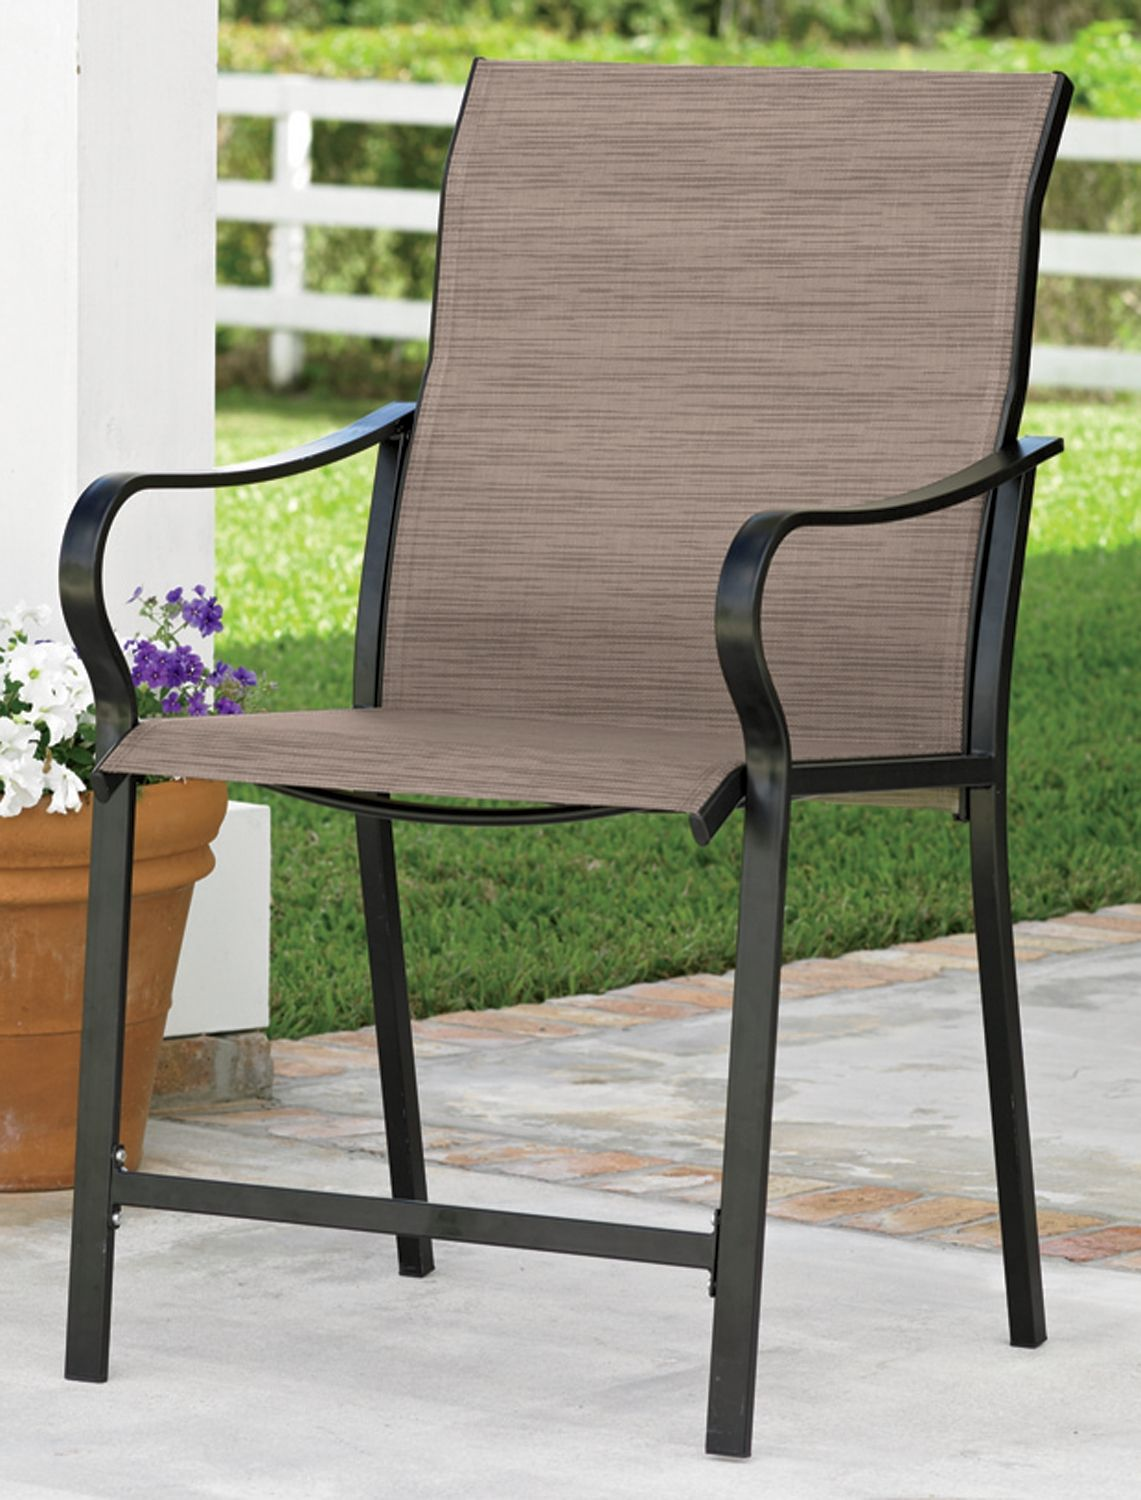 ExtraWide HighBack Patio Chair Extra Wide Portable